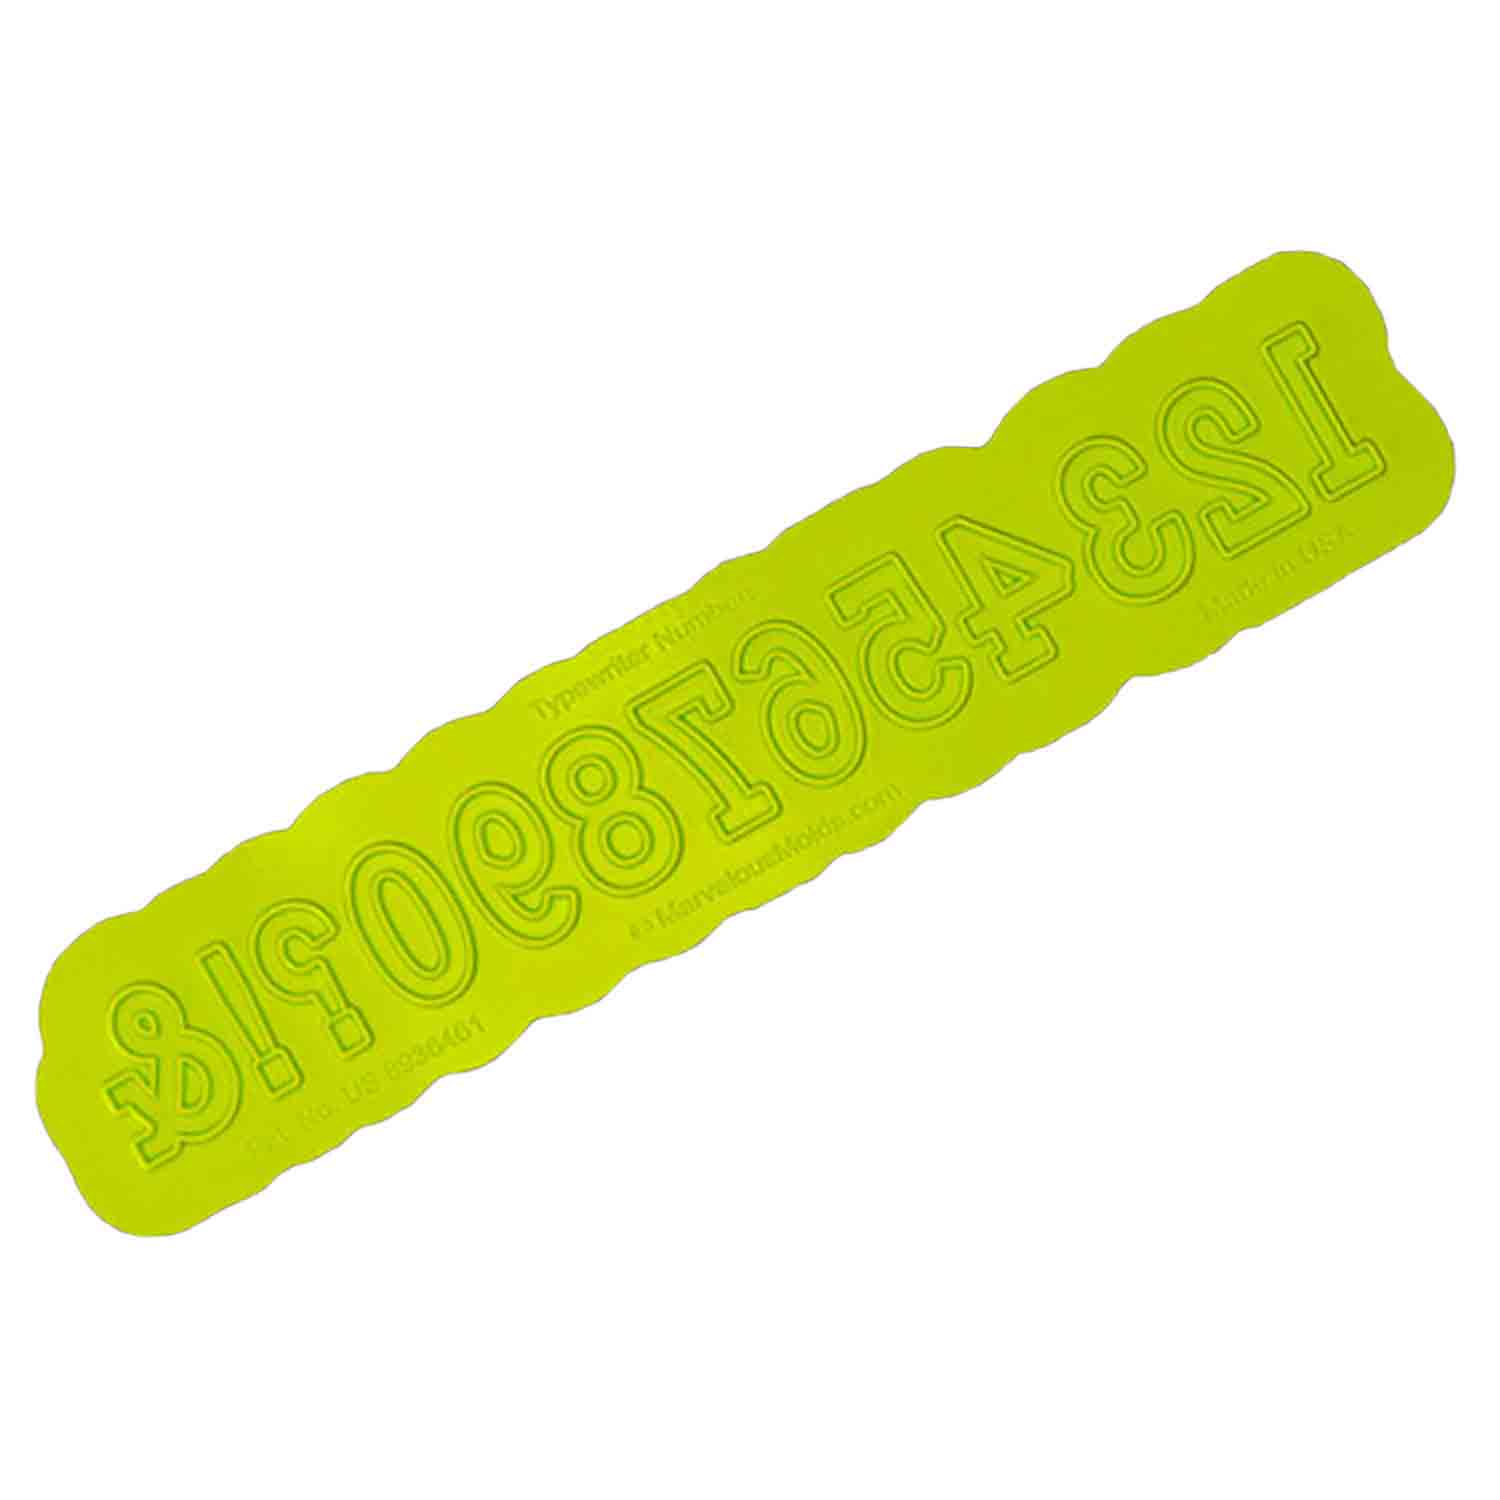 Typewriter Numbers Flexabet™ Silicone Mold